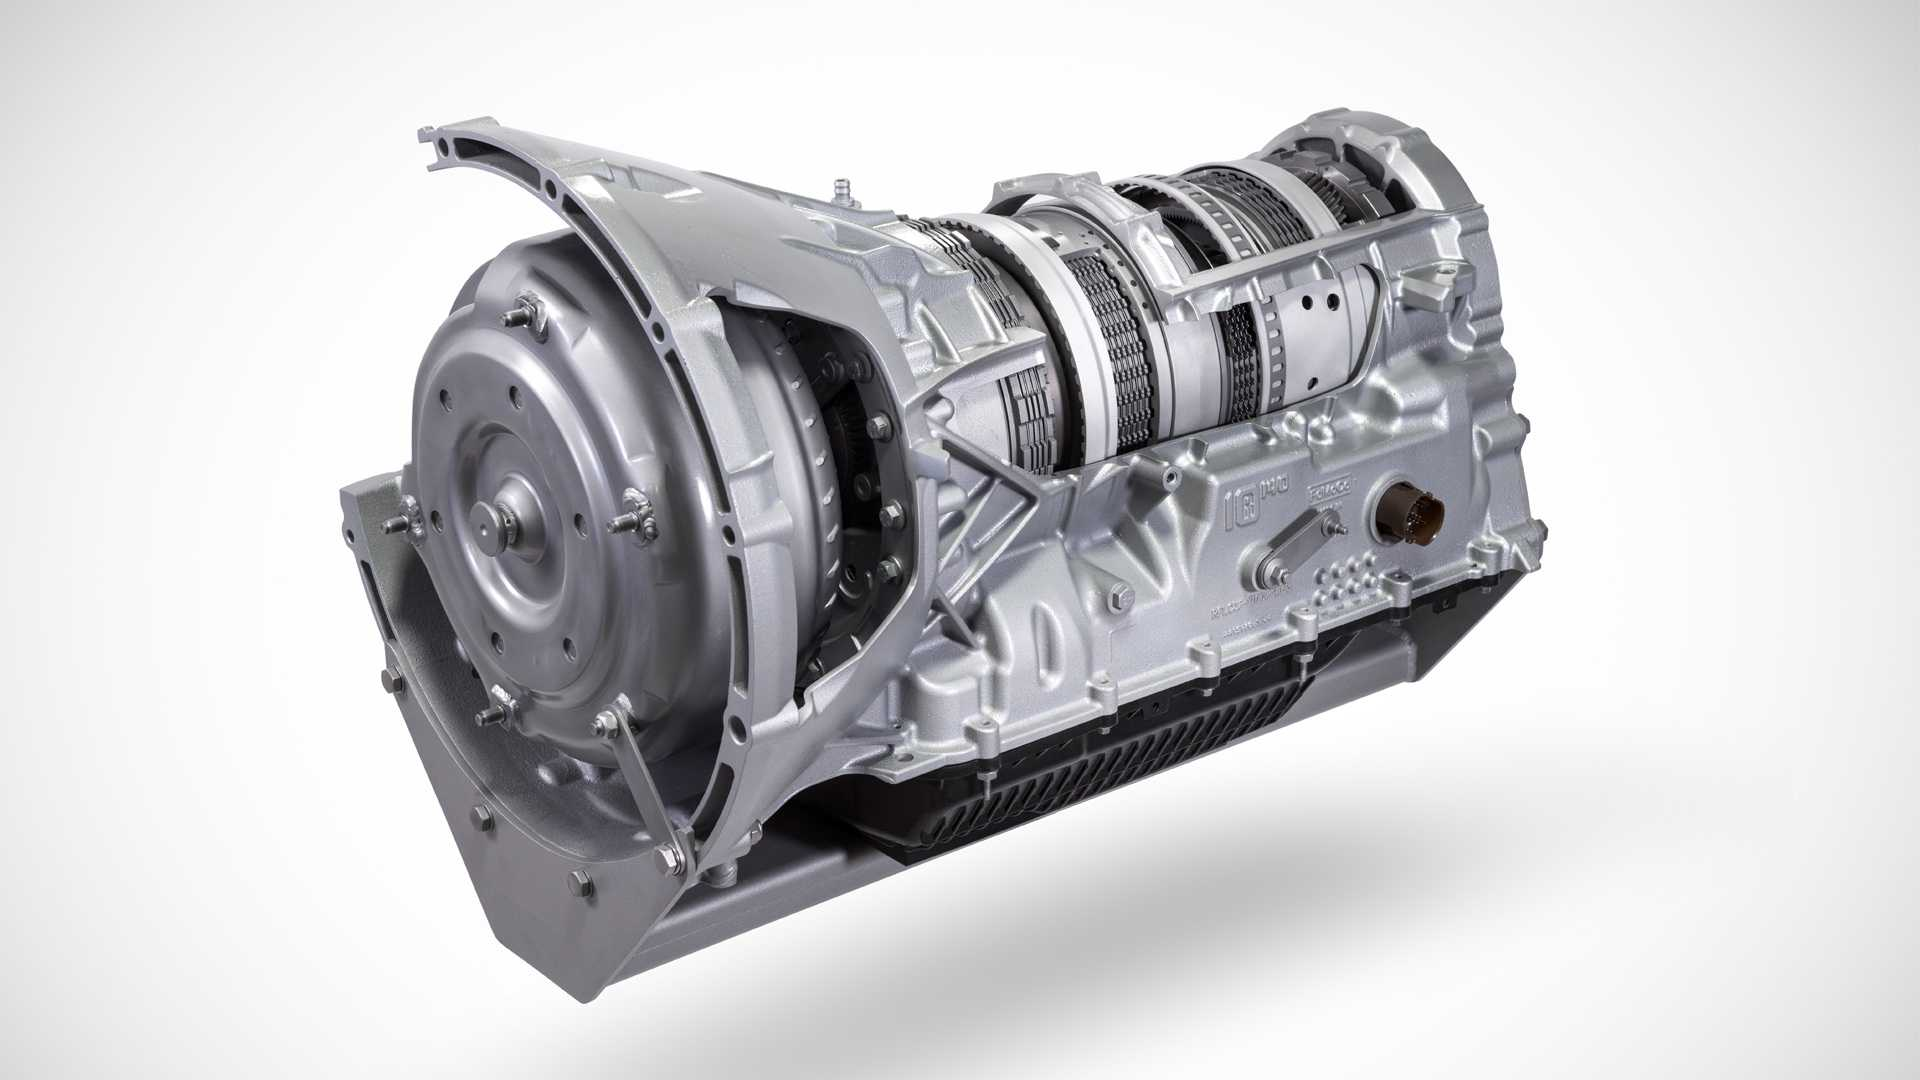 2020-ford-super-duty-transmission